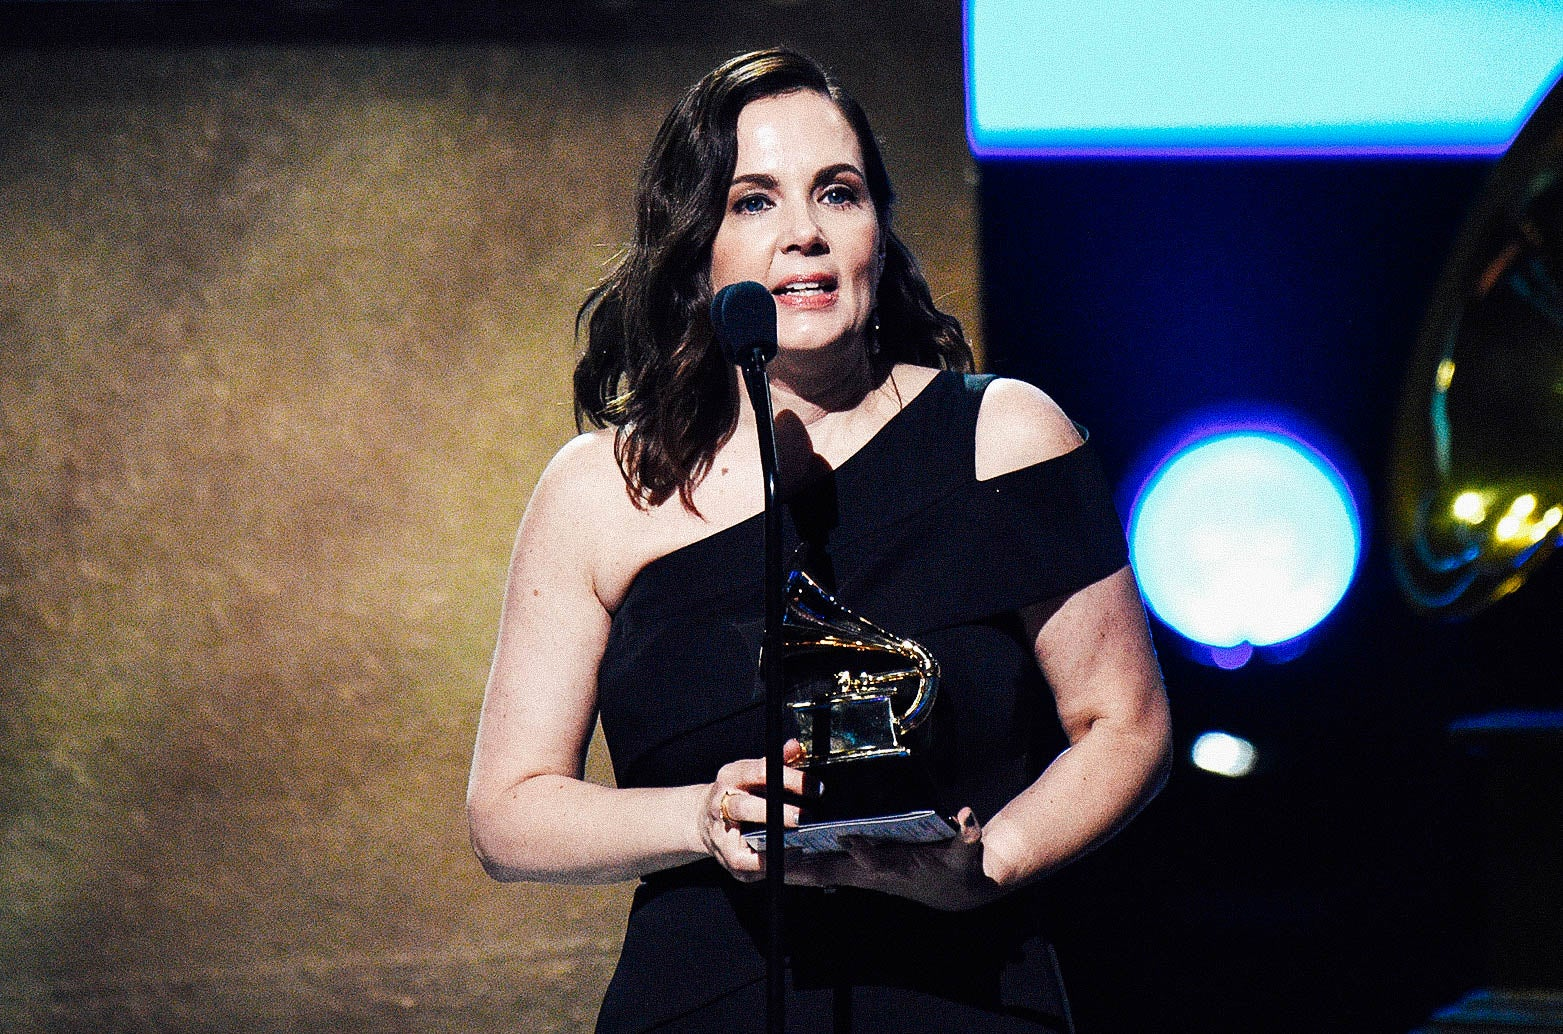 Singer-songwriter Lori McKenna accepts the award for Best Country Song onstage at the 59th Grammy Awards.